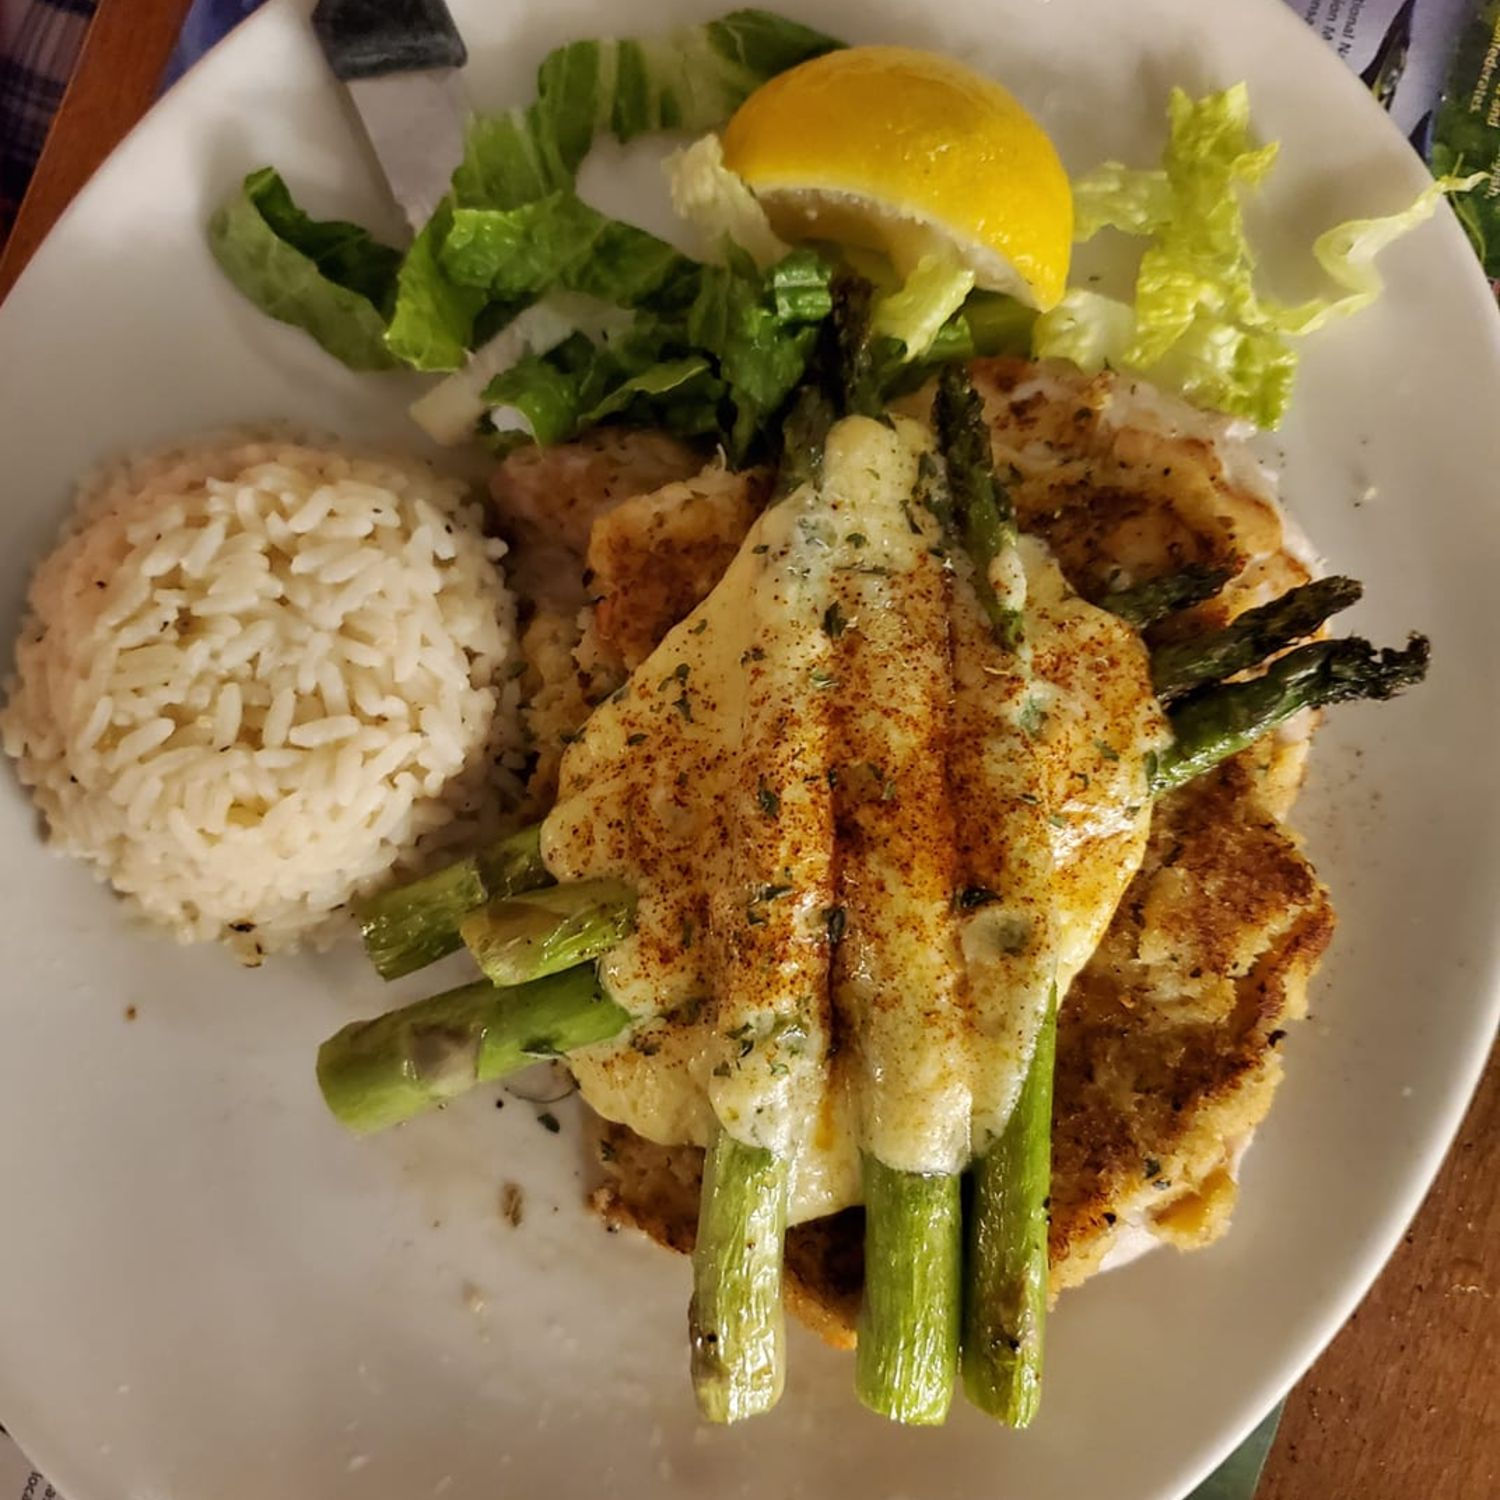 Asparagus and chicken with side of rice